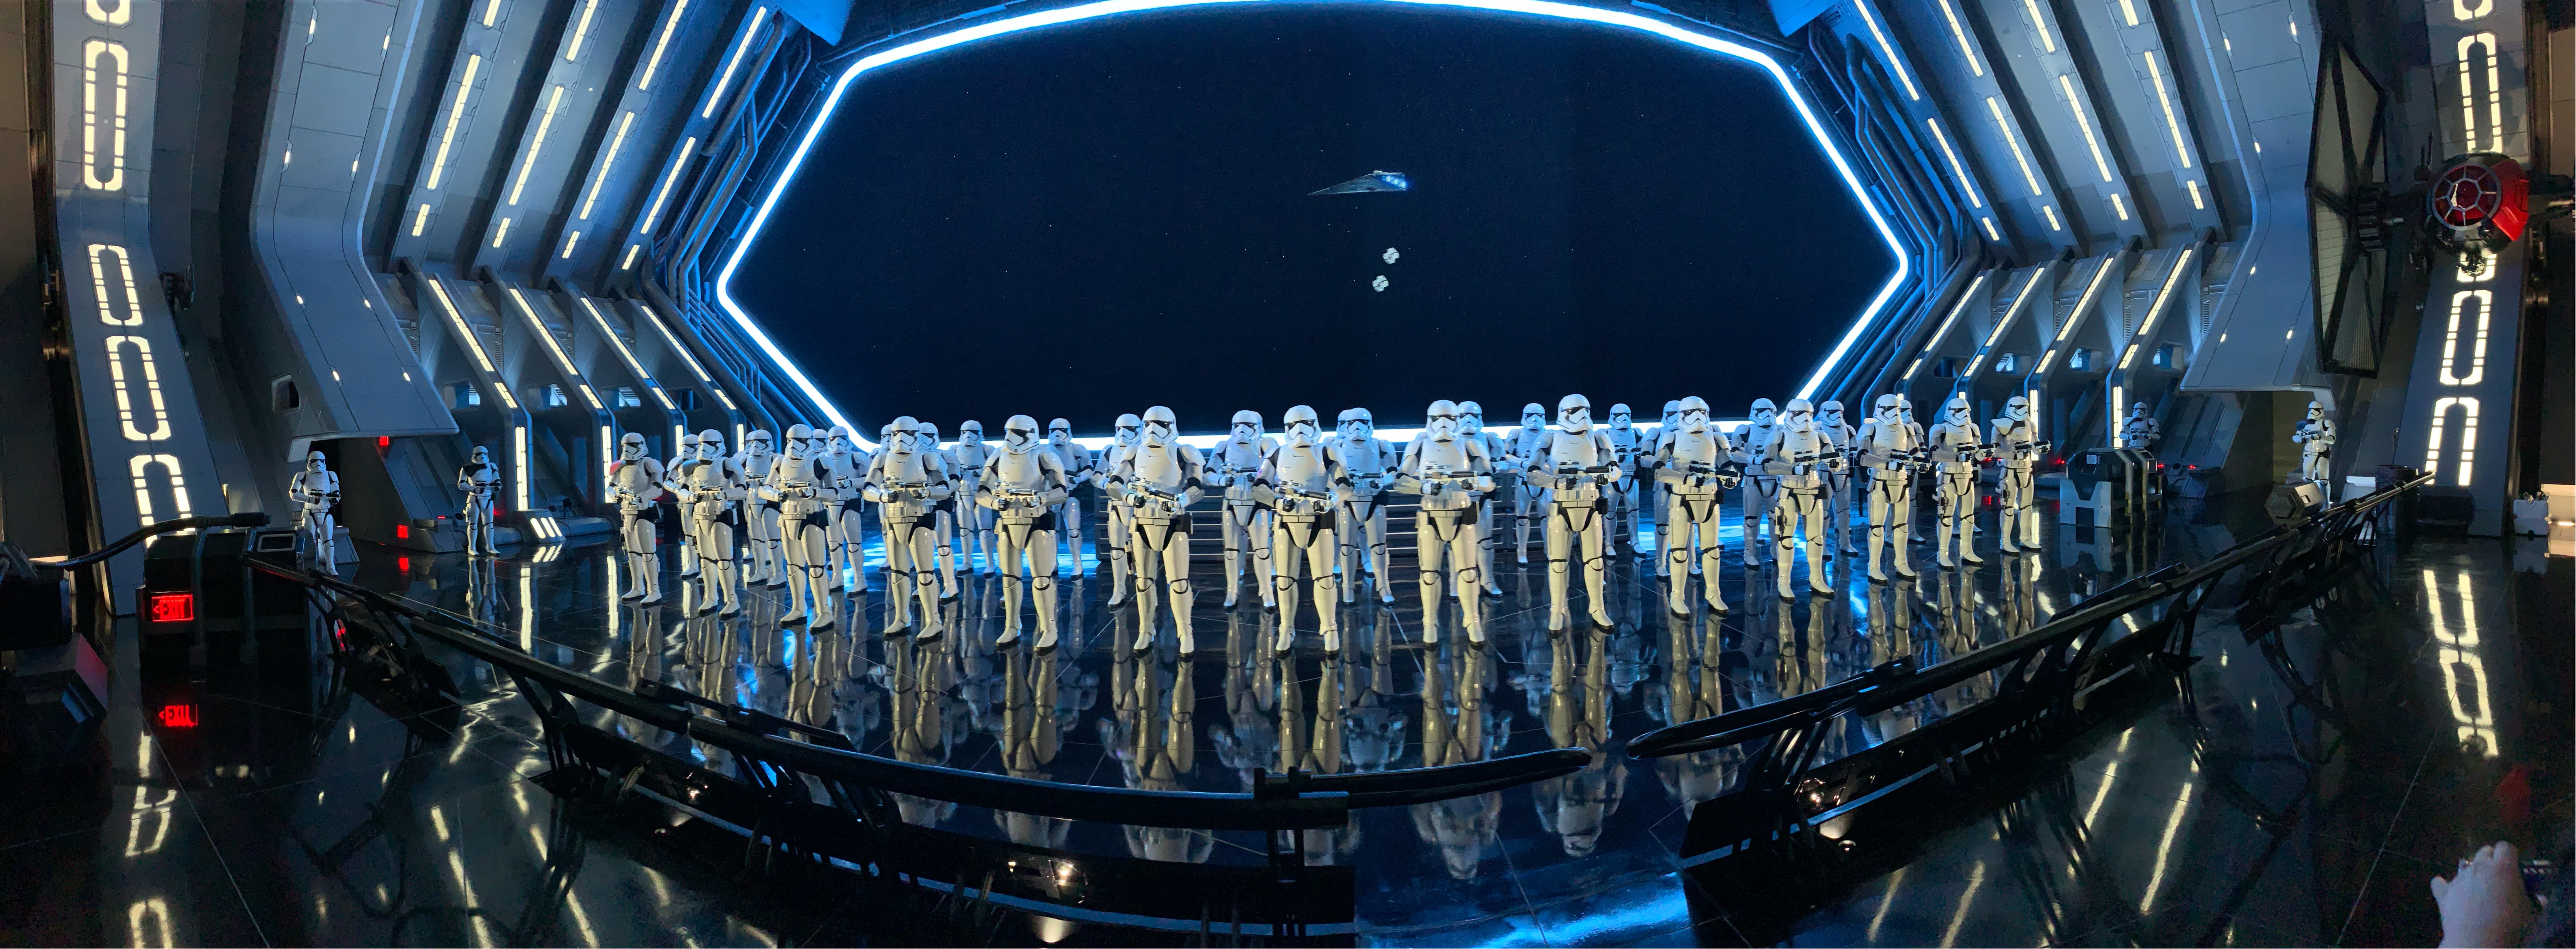 Q A This Is The Only Way To Ride Disney S Newest Attraction Star Wars Rise Of The Resistance